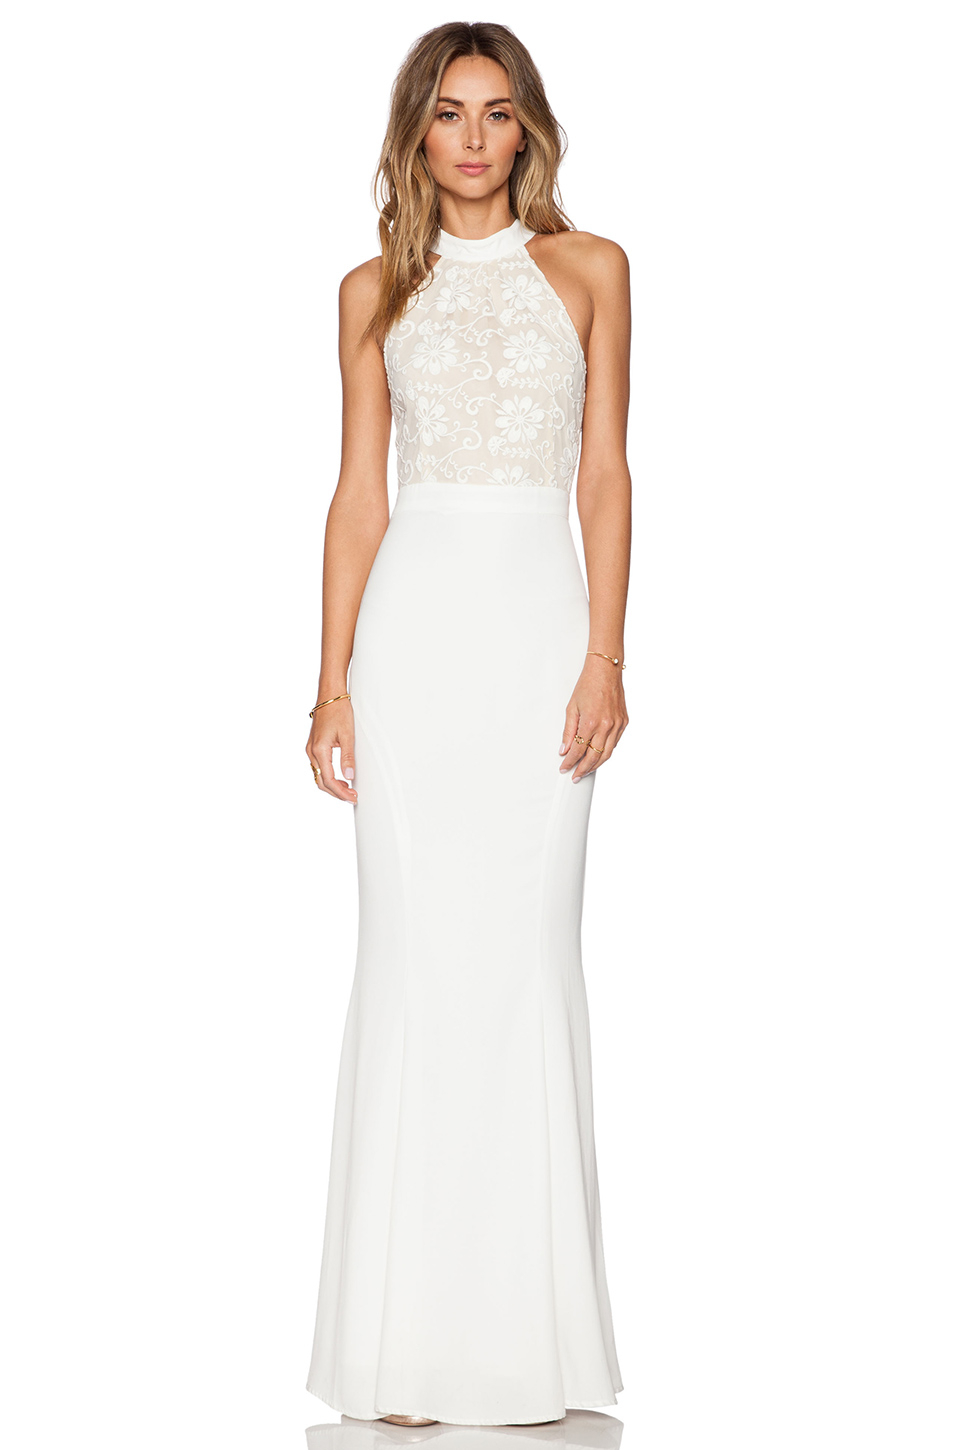 Lyst - Jarlo Lace Caden Maxi Dress in White